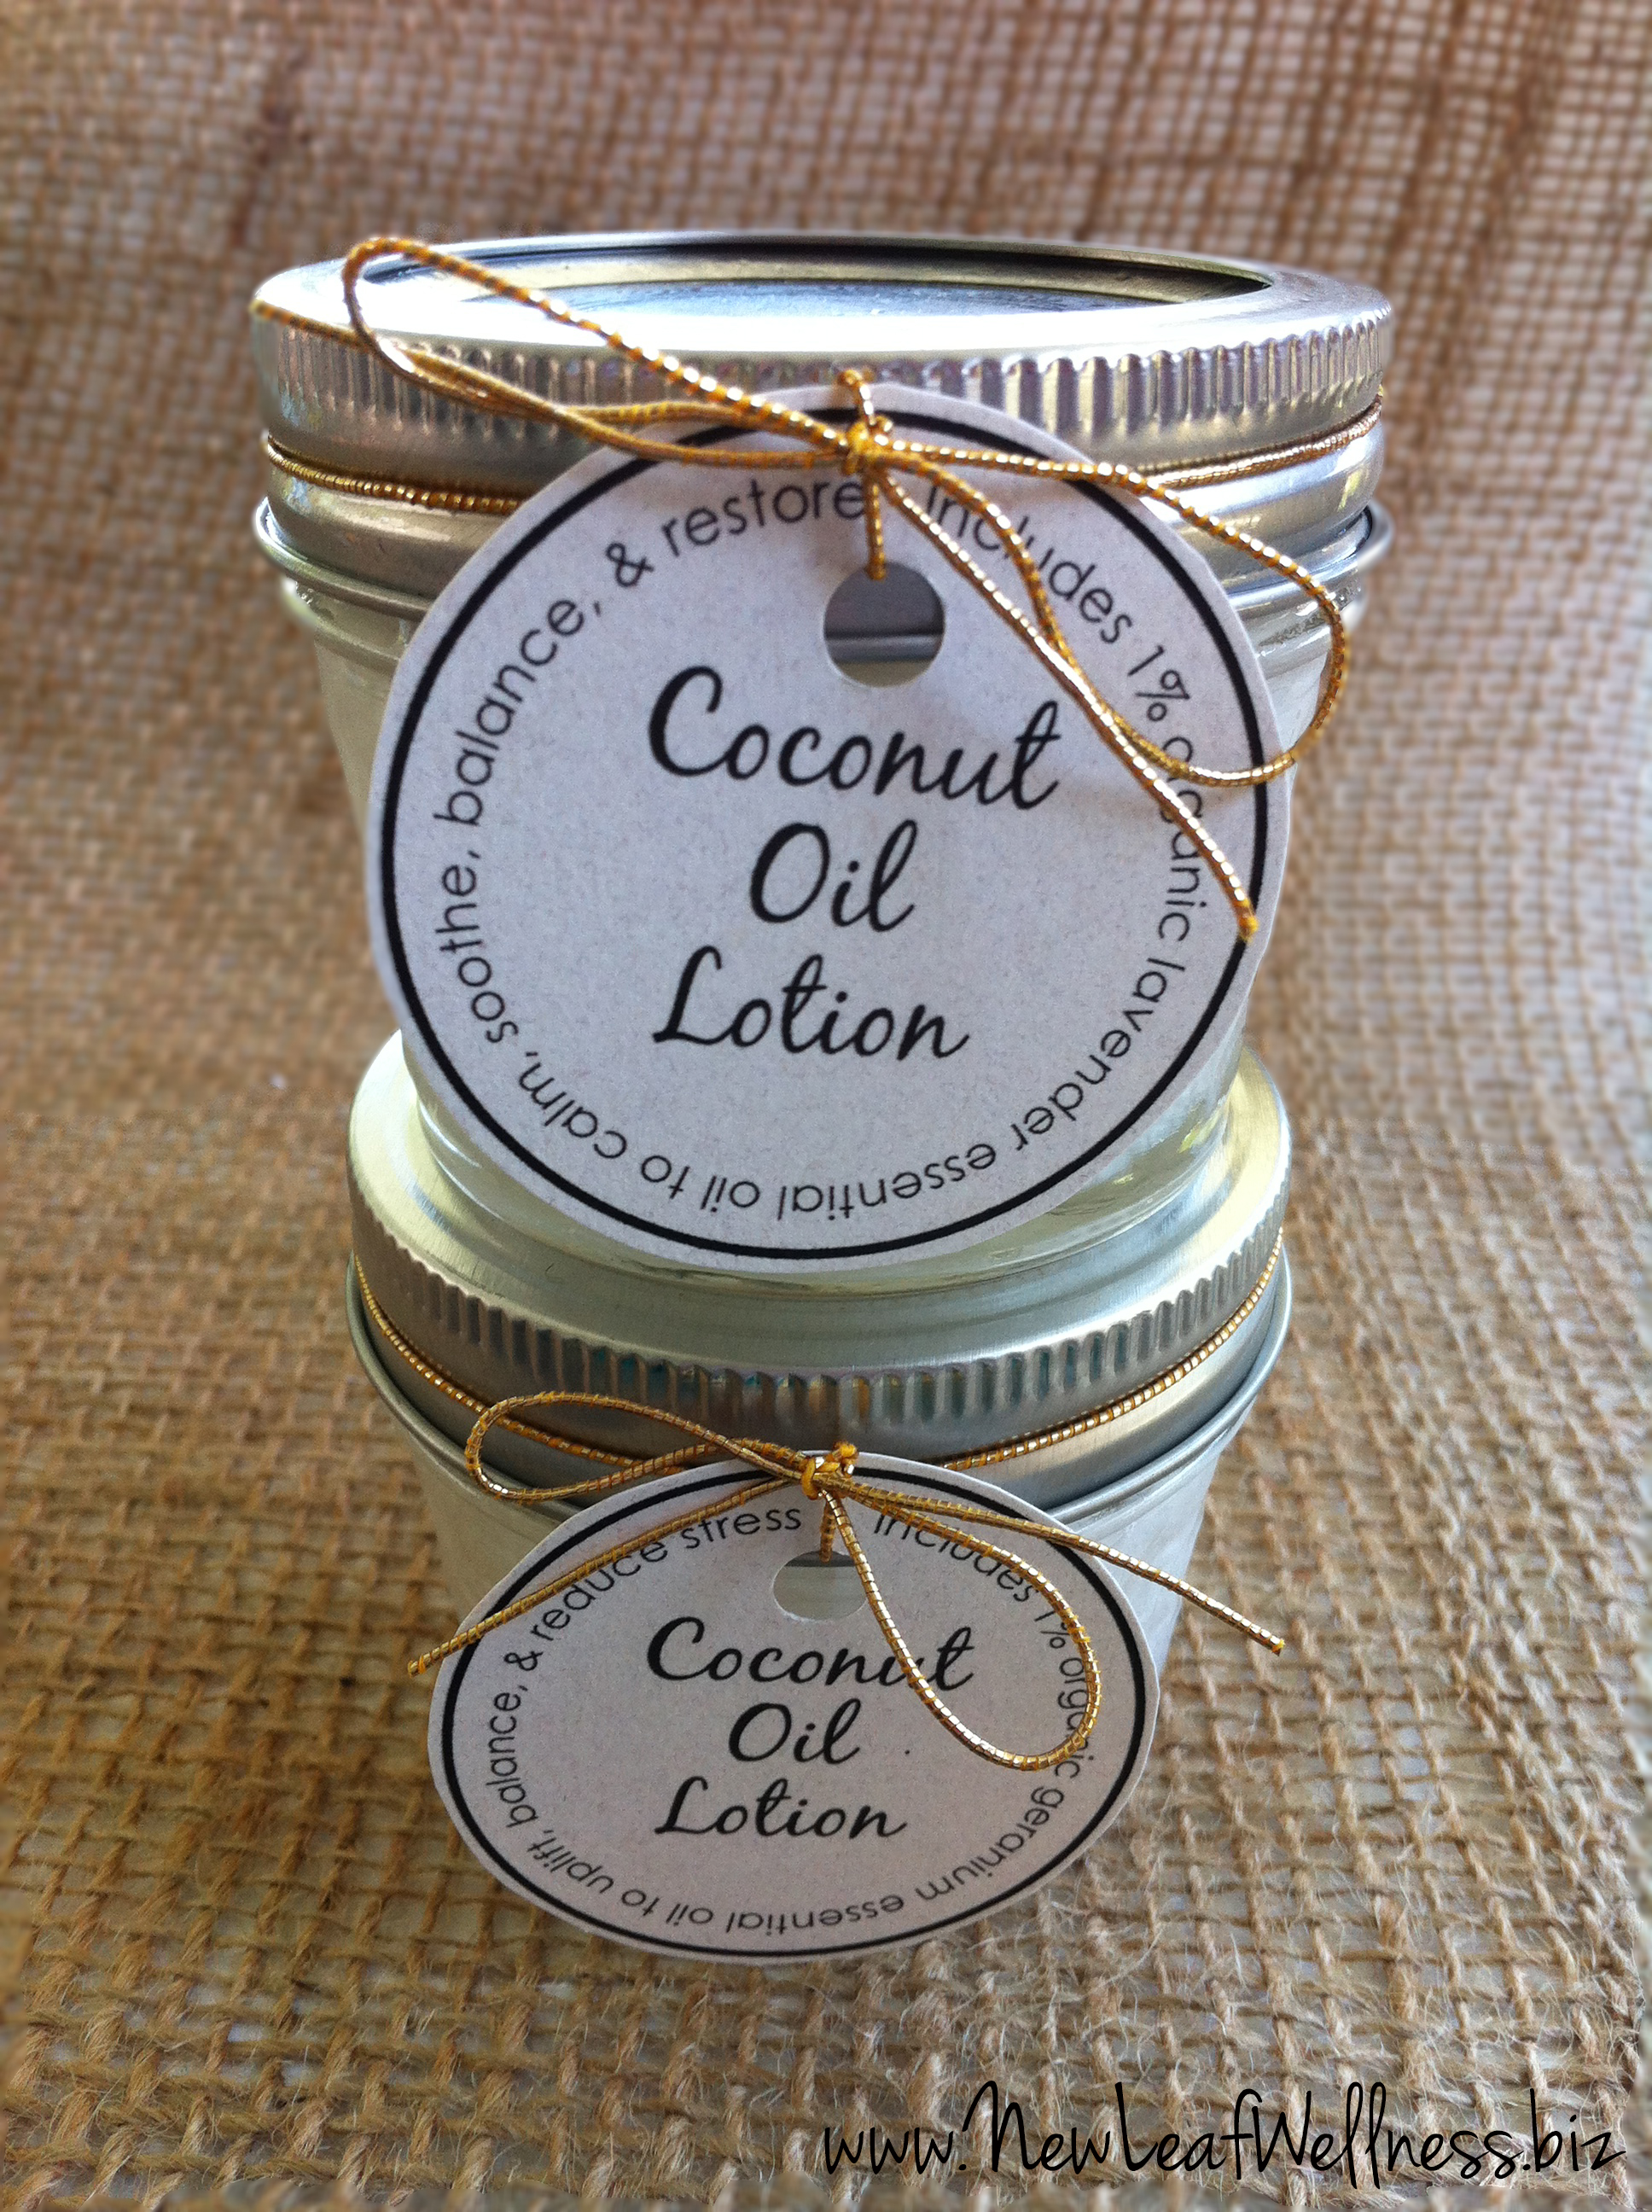 How To Make Coconut Oil Liquid At Room Temp